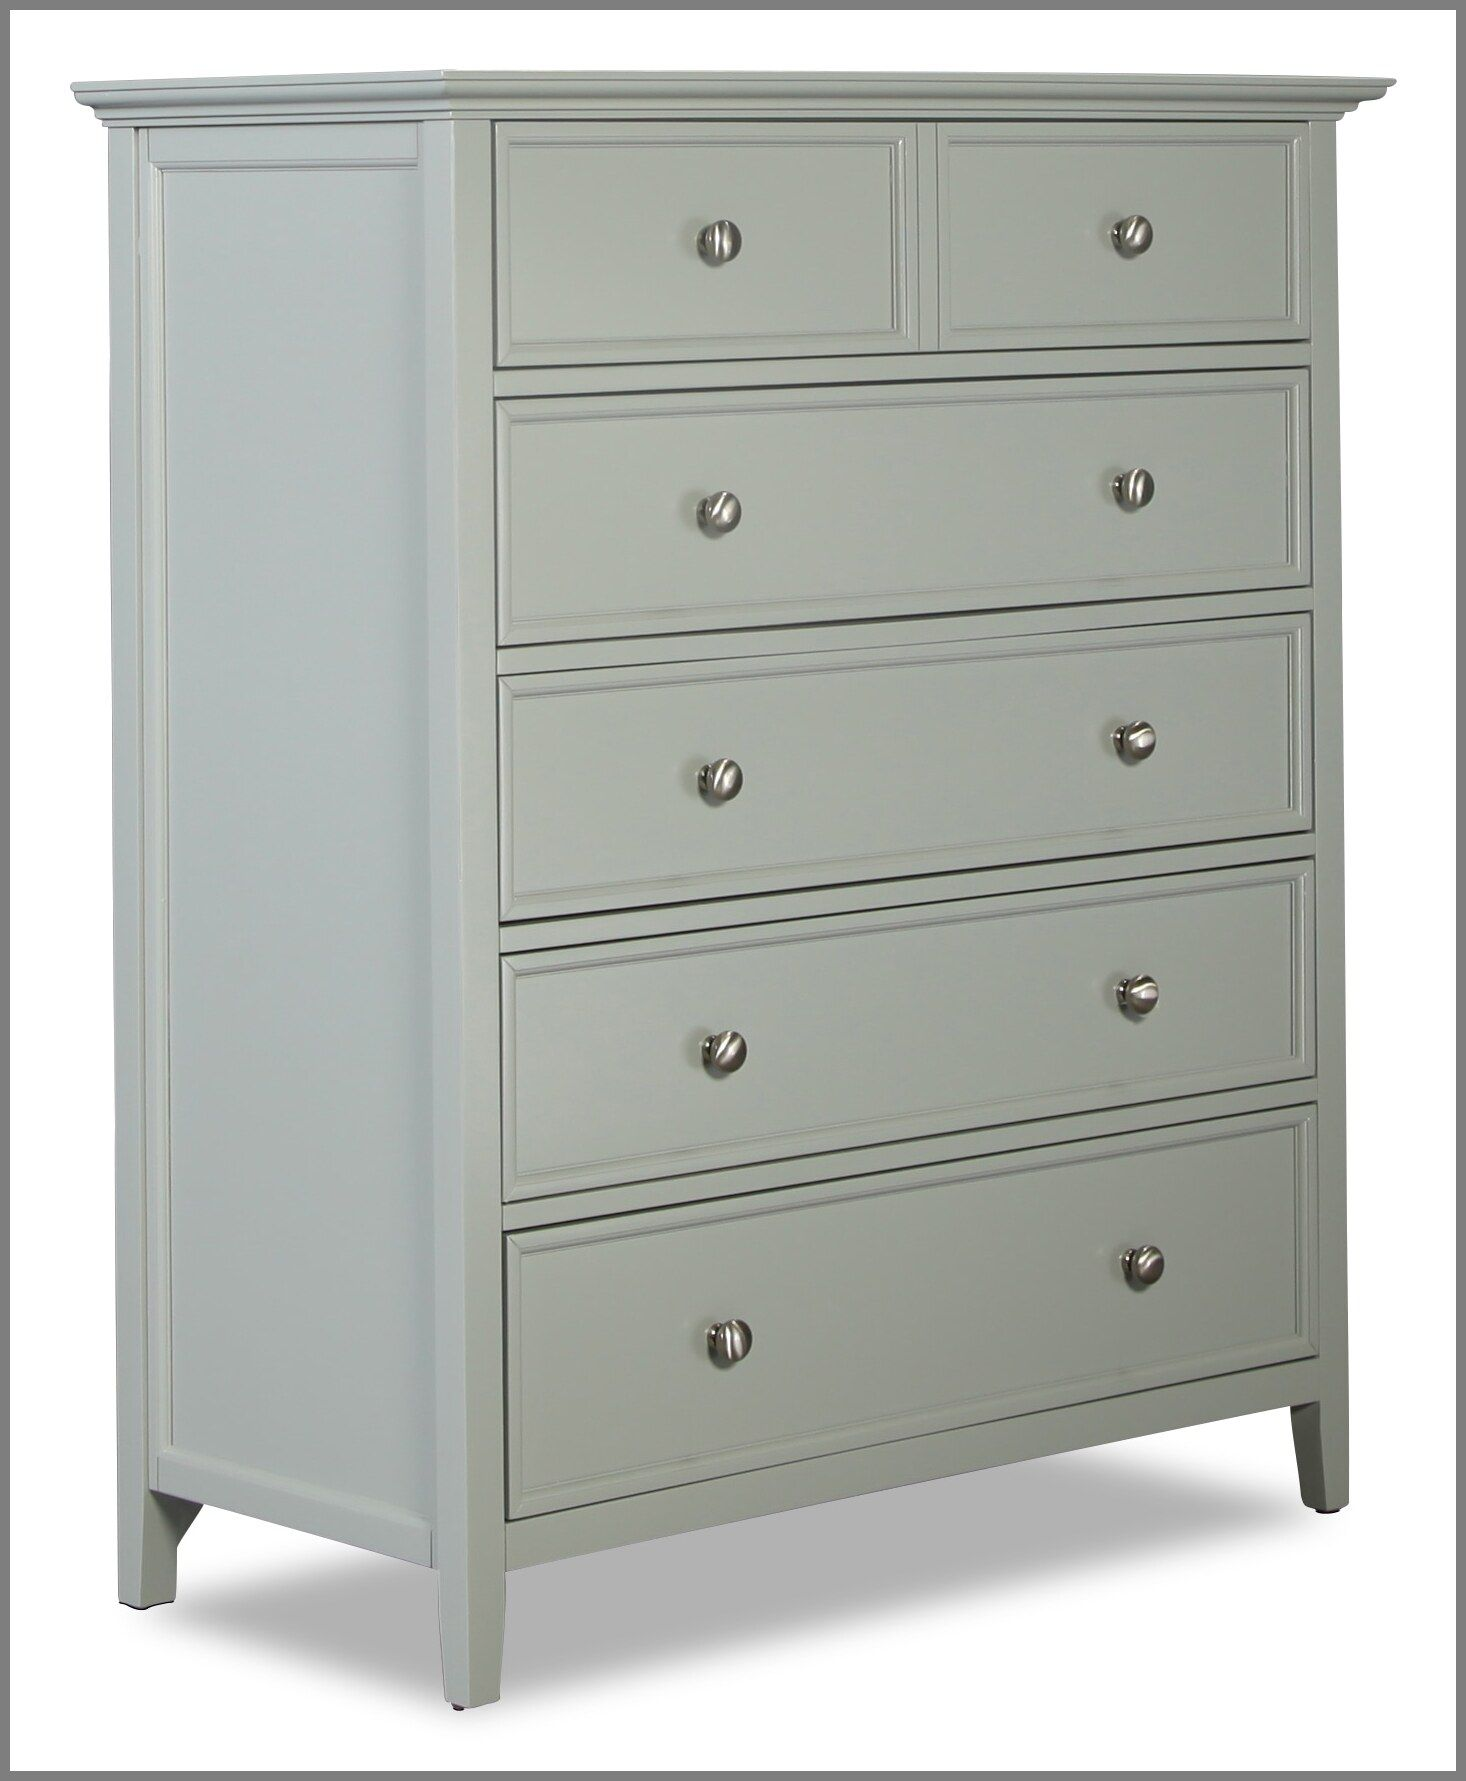 5 Drawer Chest Grey 5 Drawer Chest Grey Please Click Link To Find More Reference Enjoy In 2020 5 Drawer Chest Drawers Chest Of Drawers